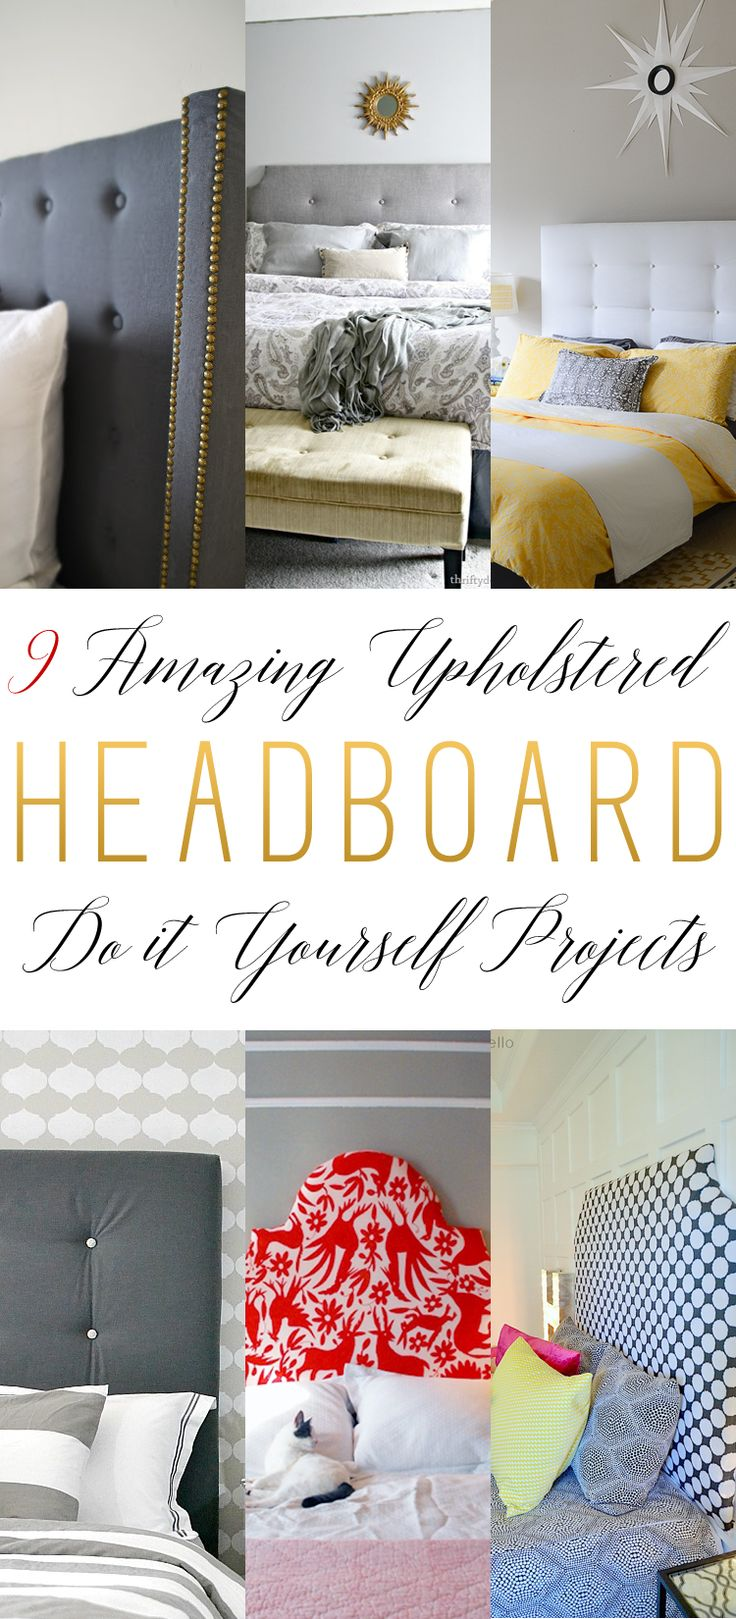 9 Amazing Upholstered Headboard Diy Projects The Cottage